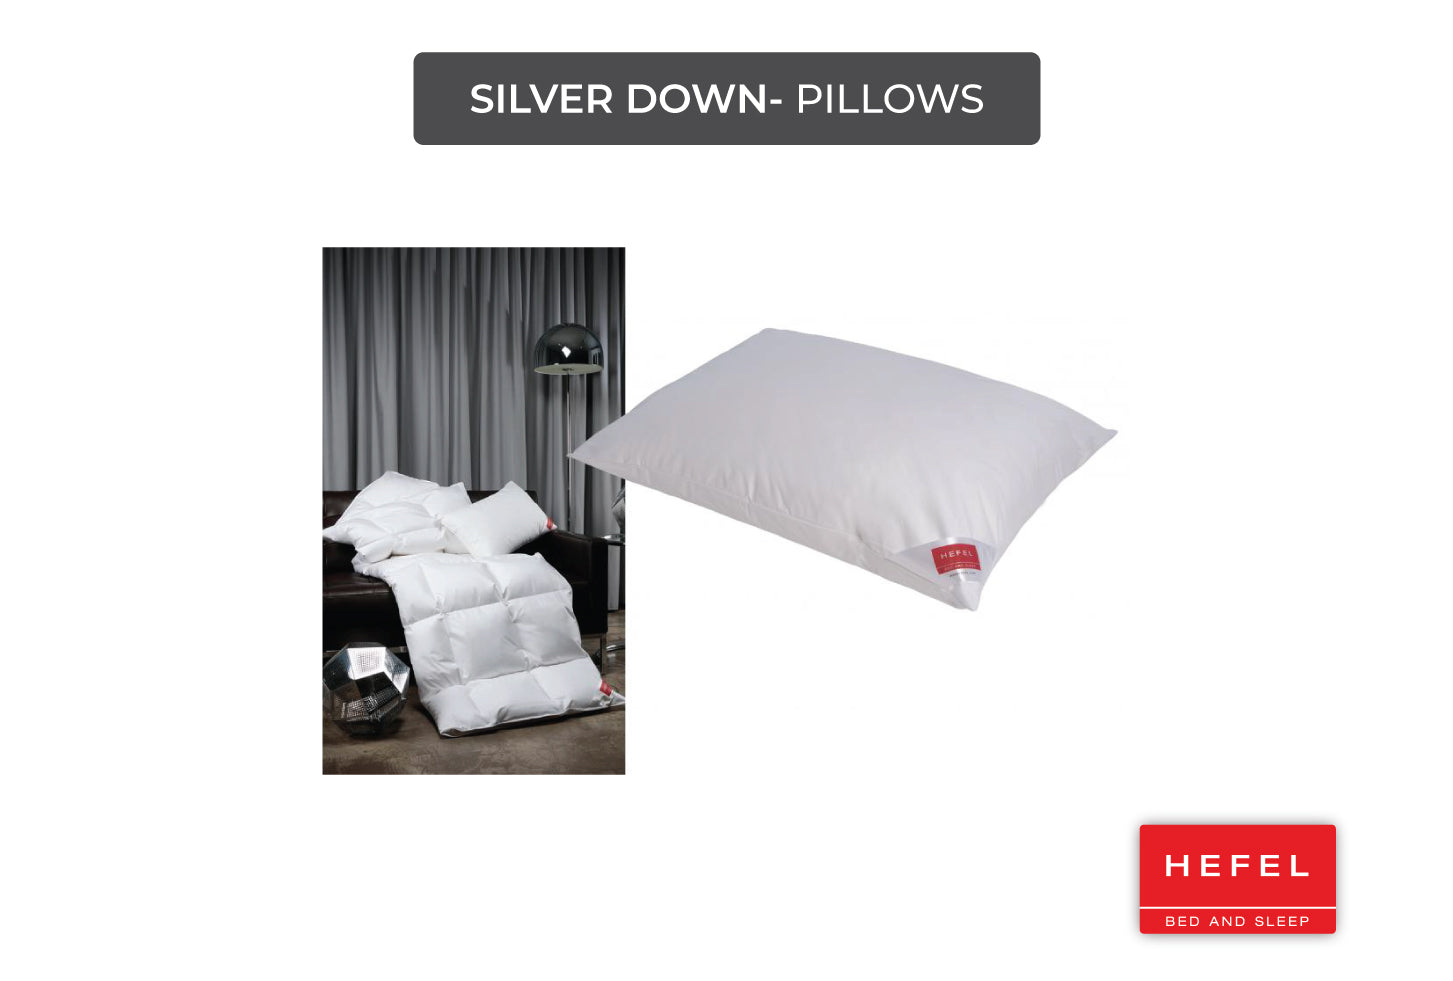 Silver Pillows